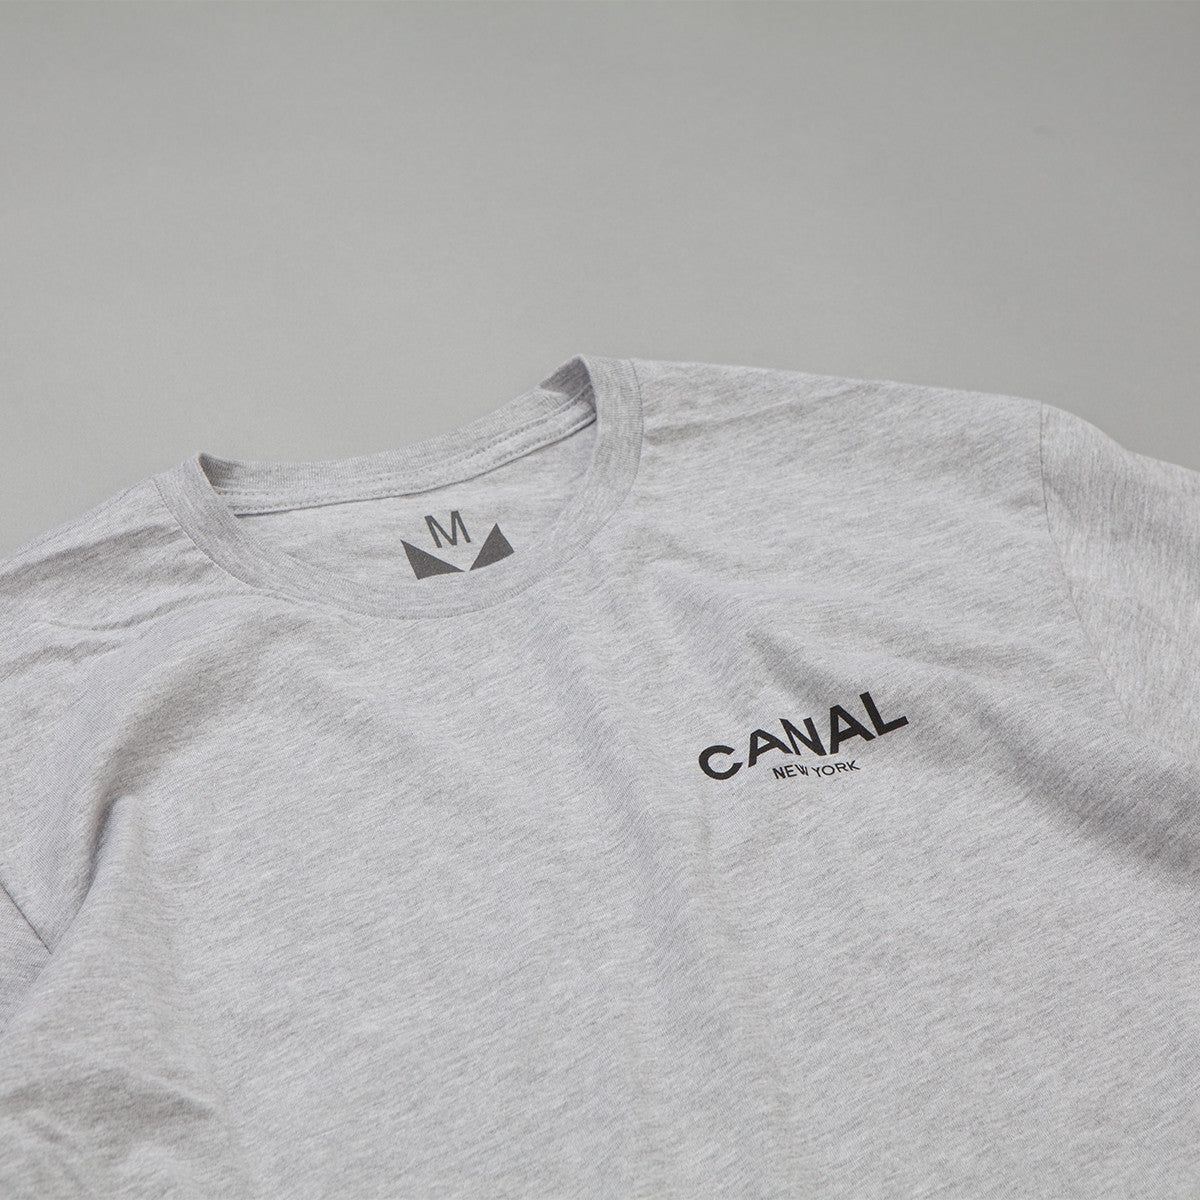 Canal New York Film Festival T-Shirt - Grey